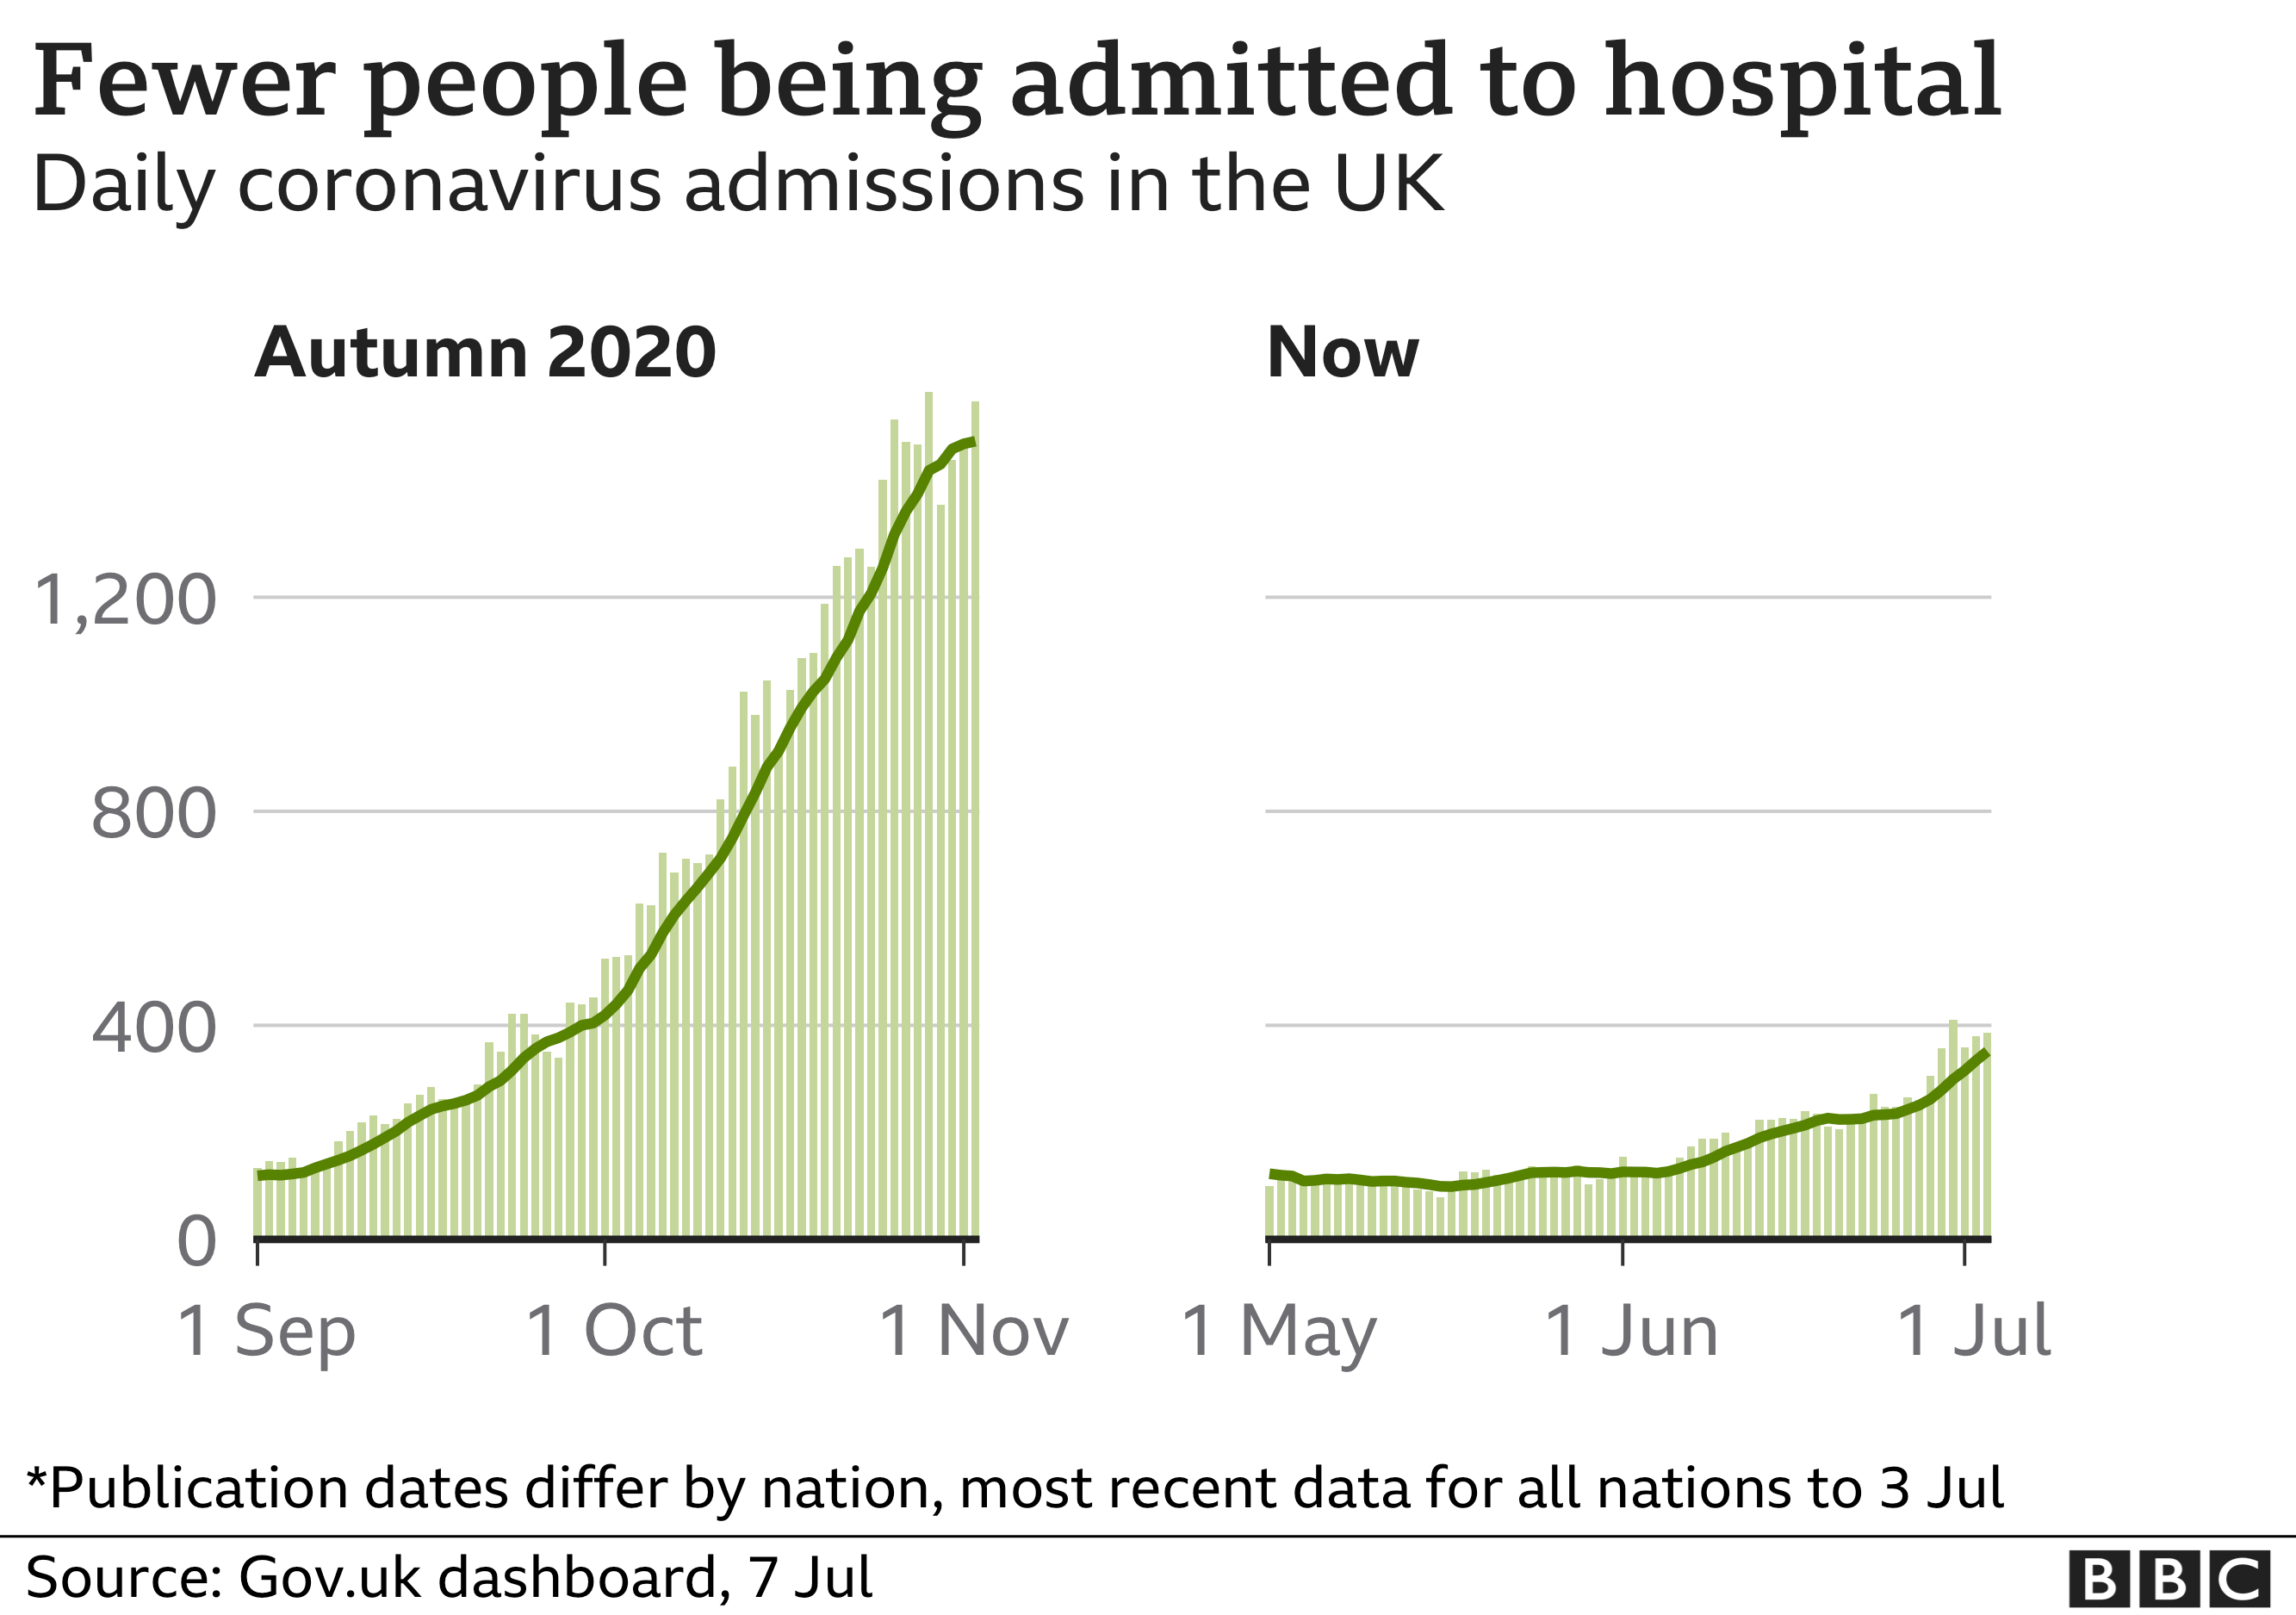 Chart shows hospital admissions are rising again